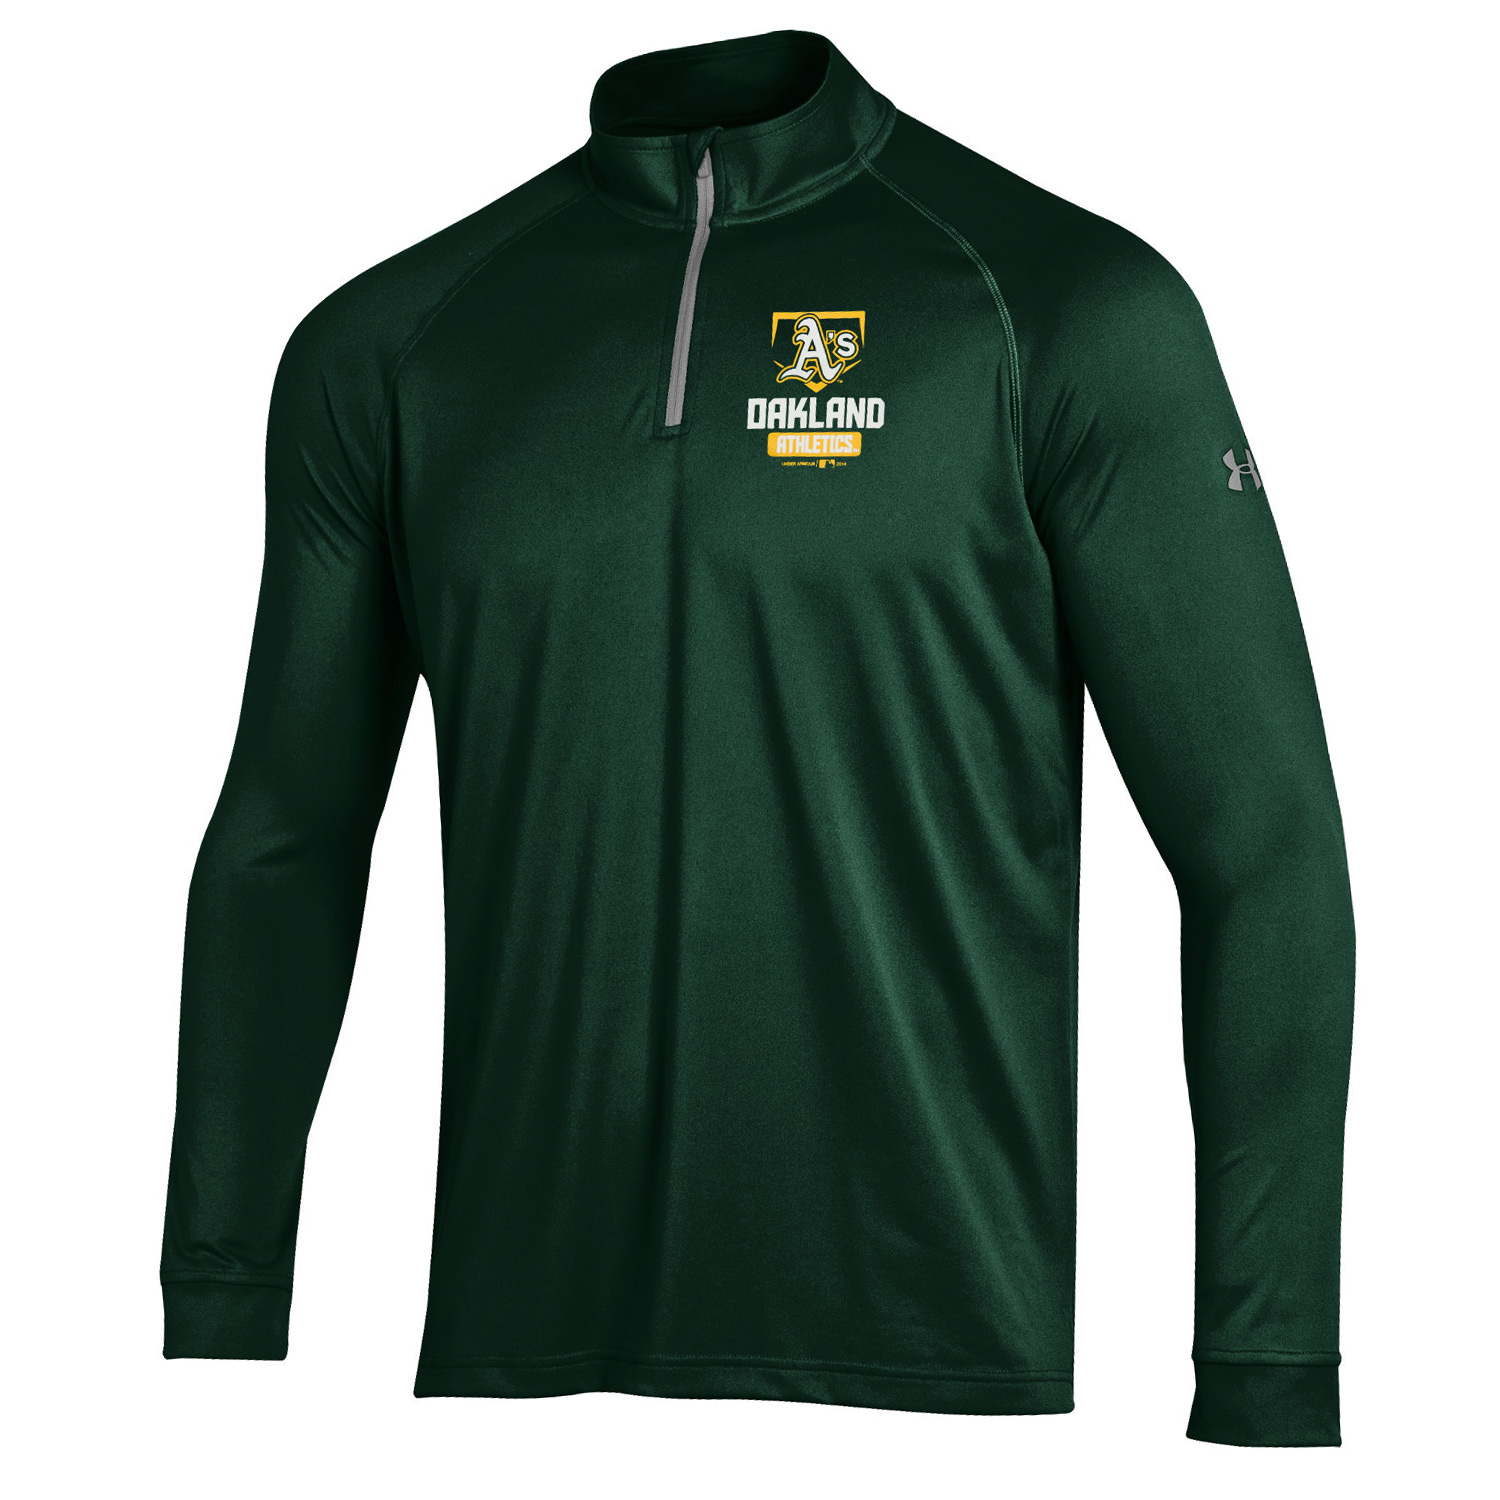 Oakland Athletics Under Armour Quarter-Zip Tech Pullover Performance Sweatshirt - Green